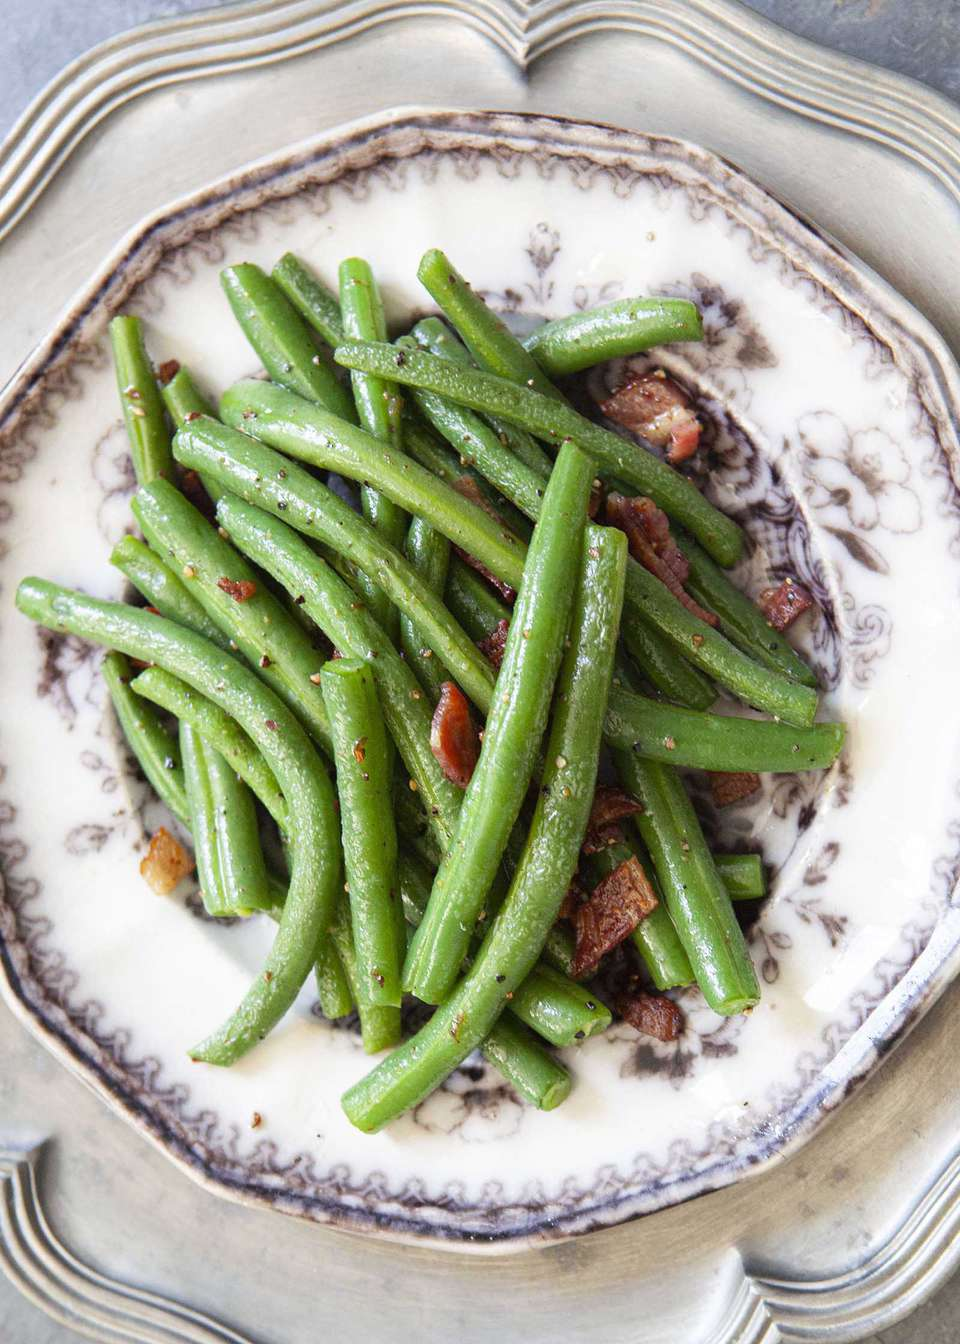 Fresh green beans cooked with bacon and served on a plate